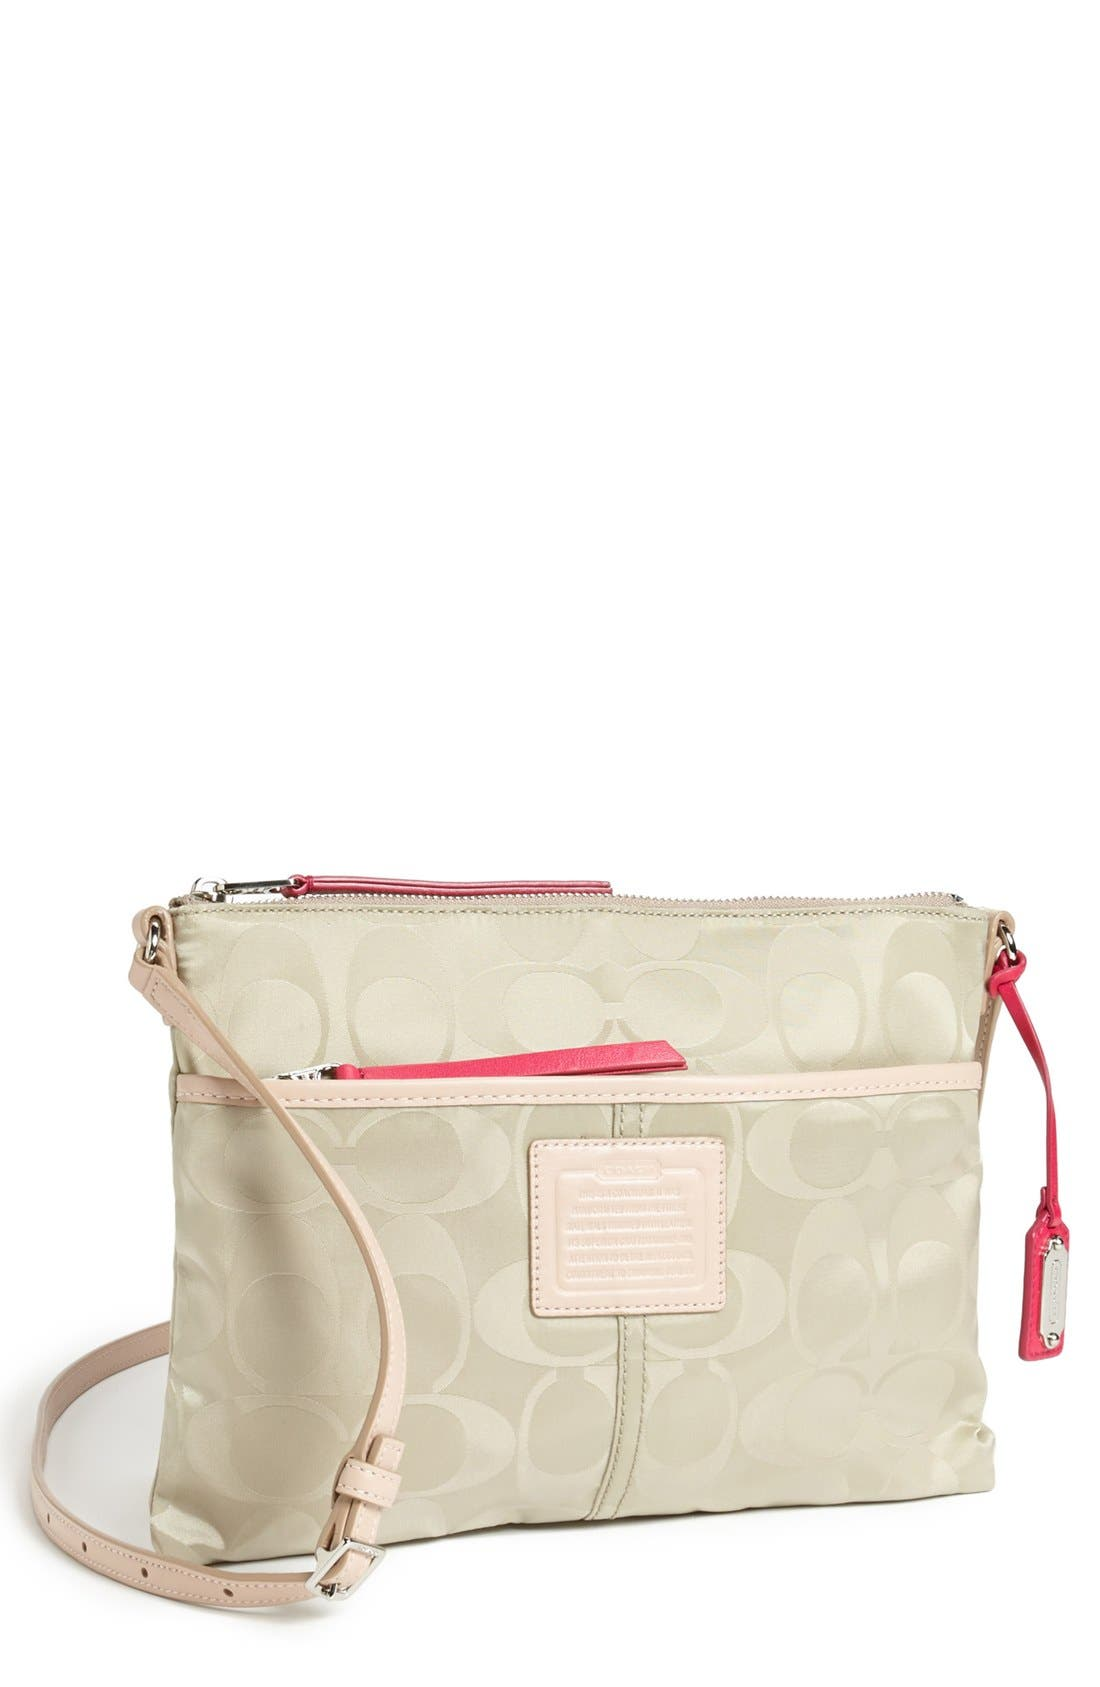 Alternate Image 1 Selected - COACH 'Legacy - Hippie' Nylon Crossbody Bag